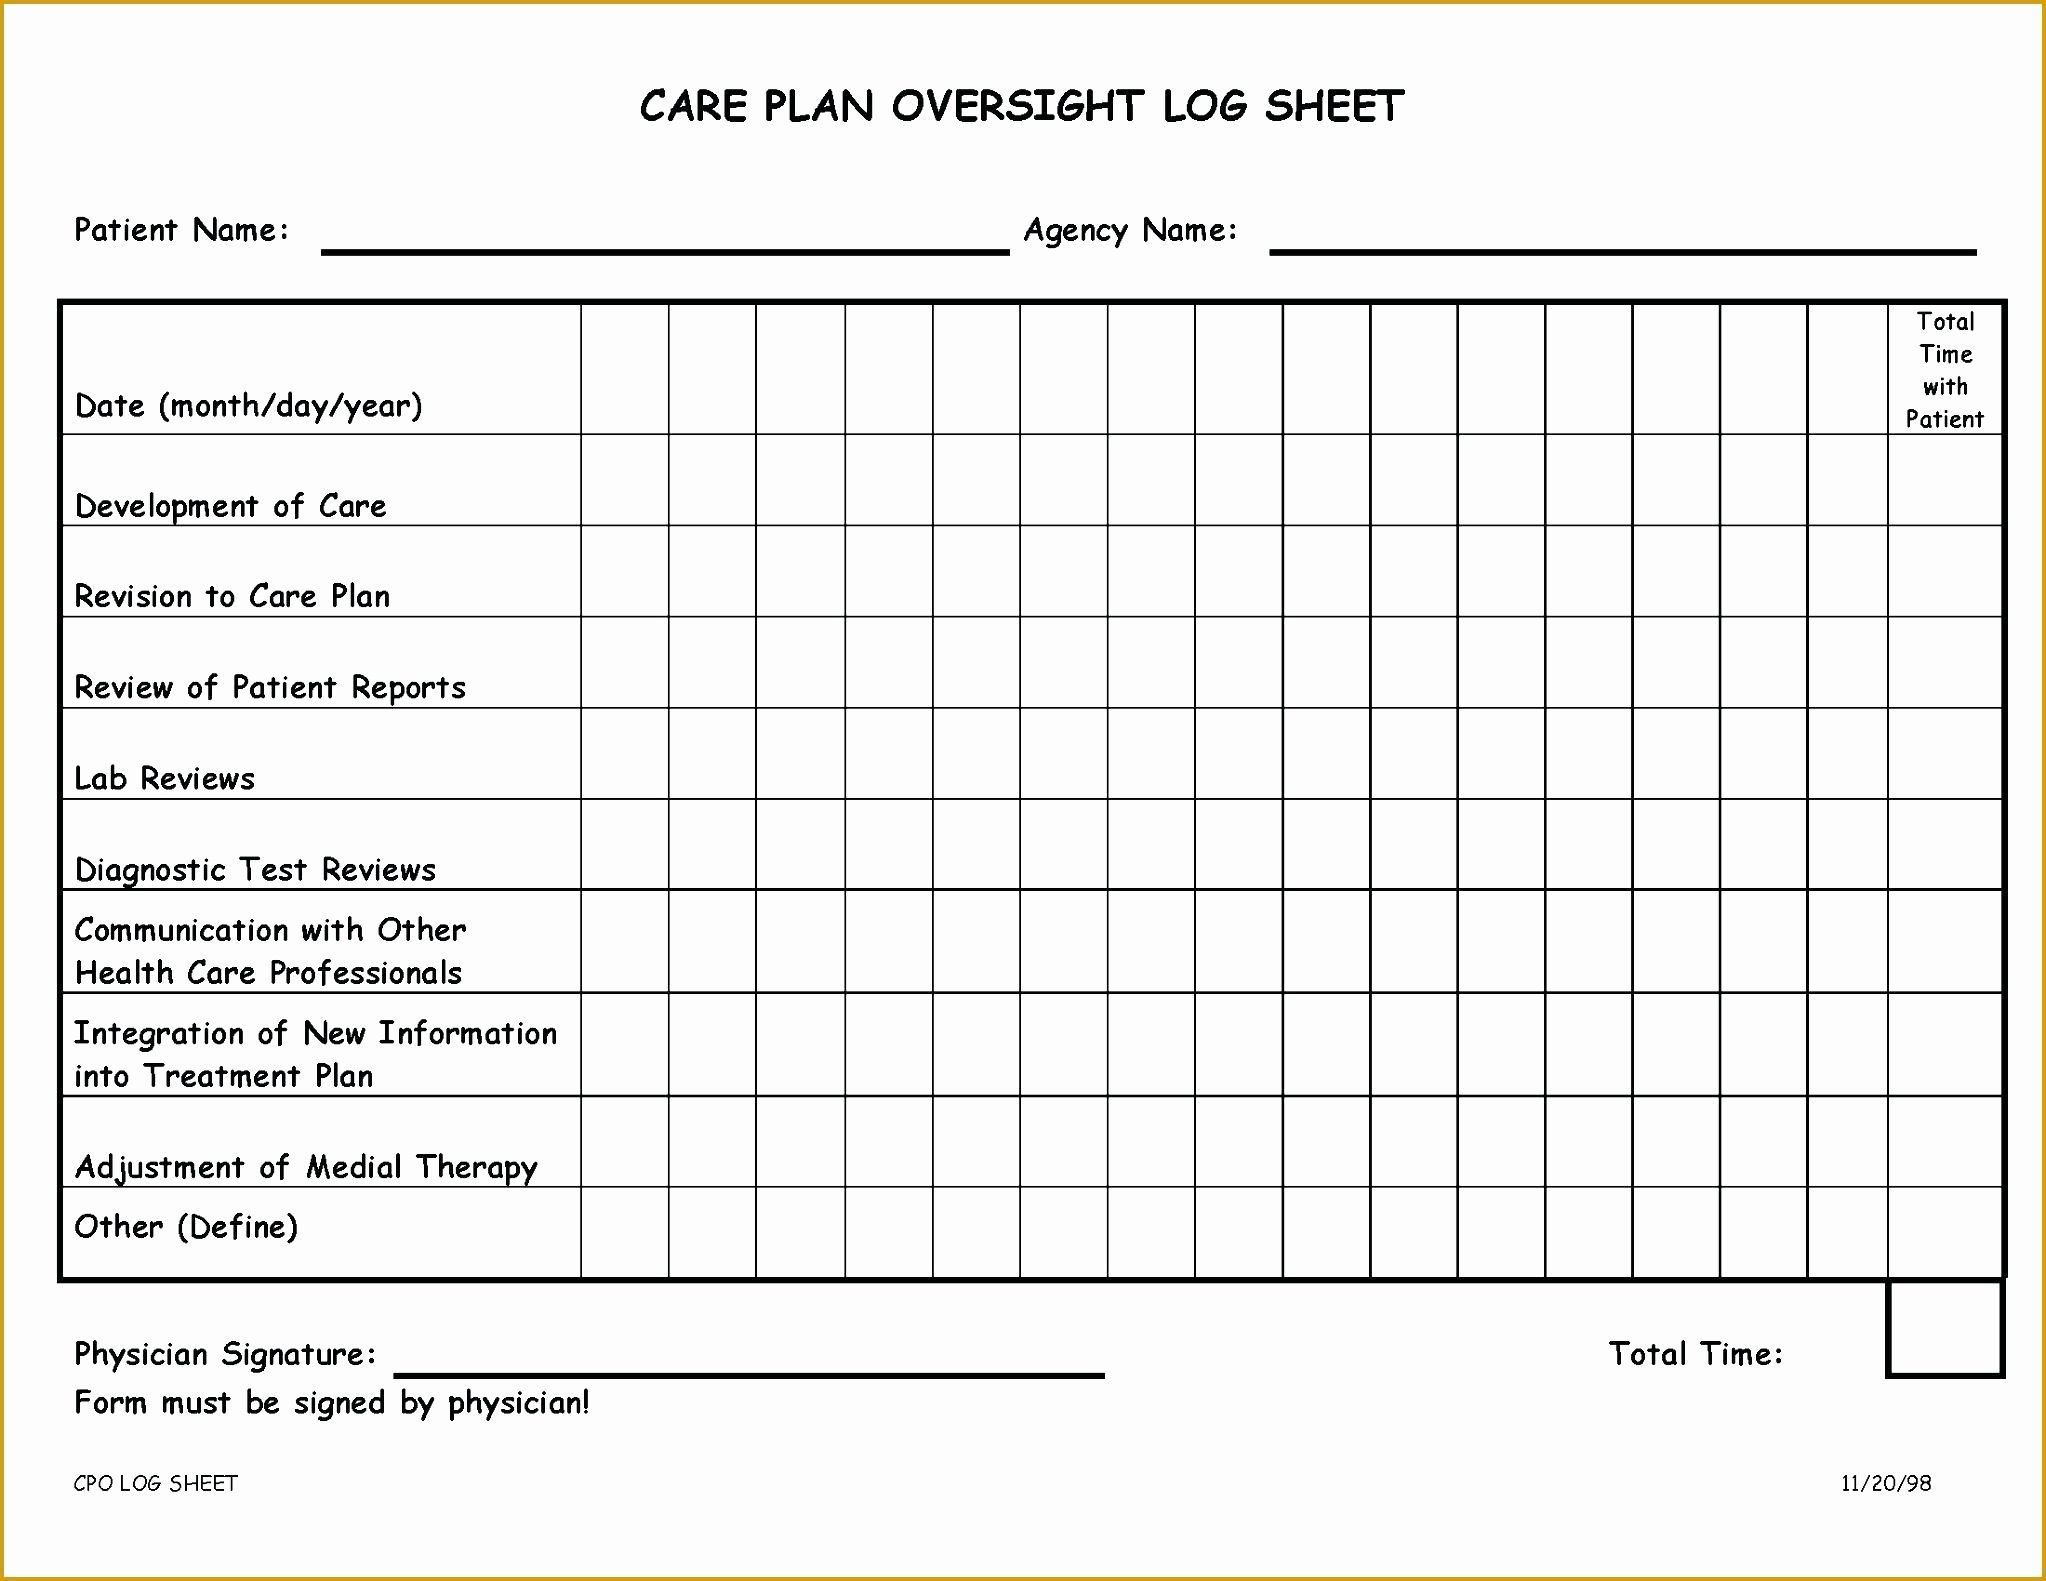 Home Health Care Plan Template Elegant Template Home Care Business Plan Template In 2021 Marketing Plan Template Health Care Hospital Marketing Home health care plan template